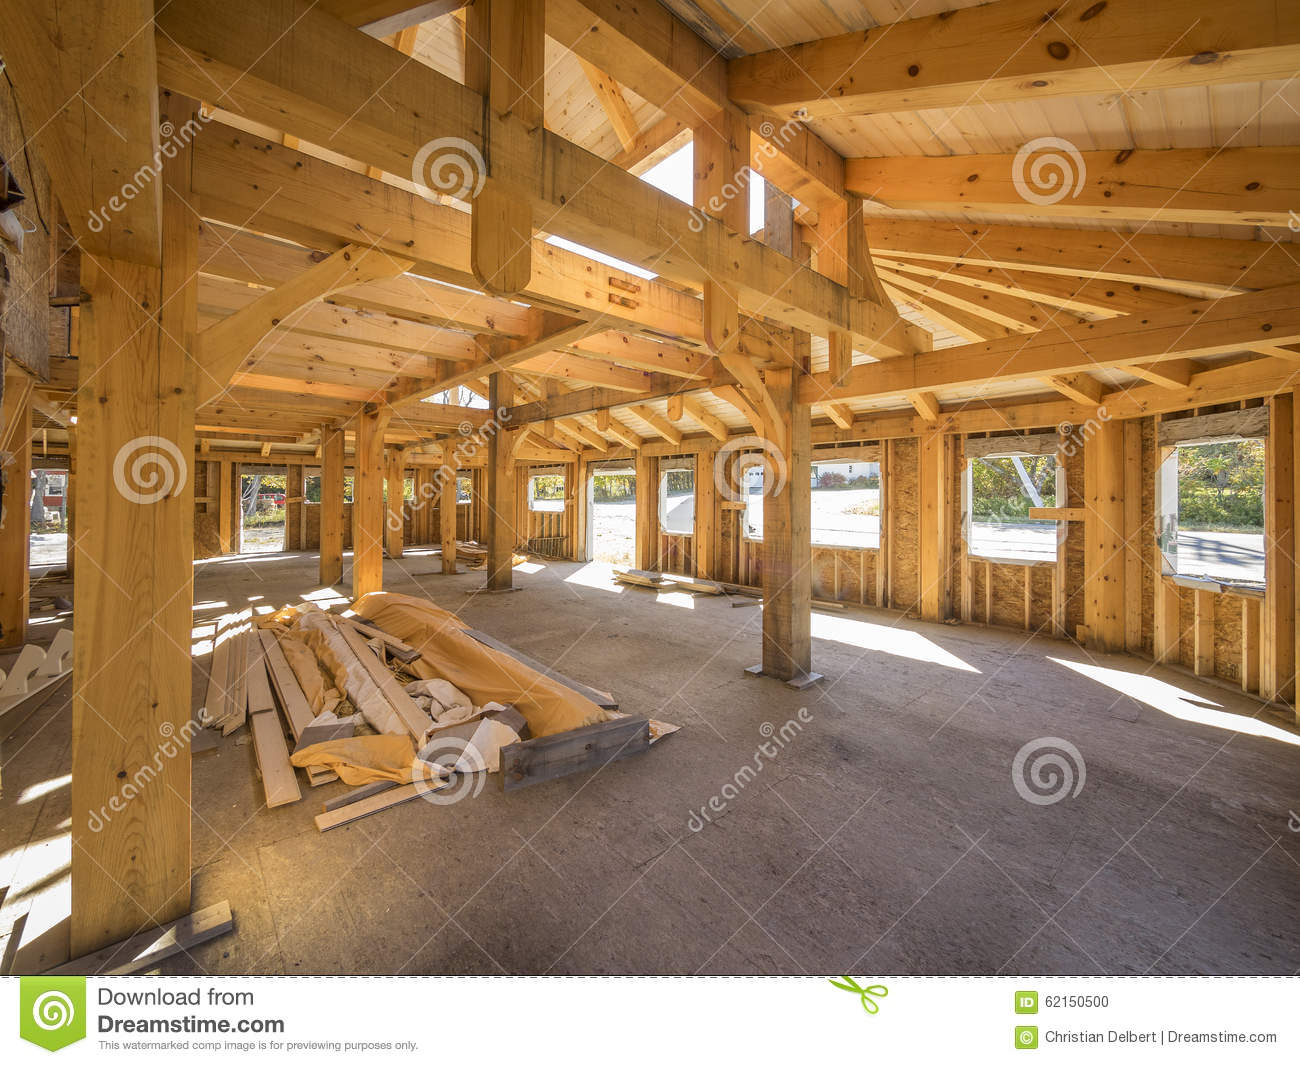 Post and beam interior construction stock photo image of for Post and beam construction plans